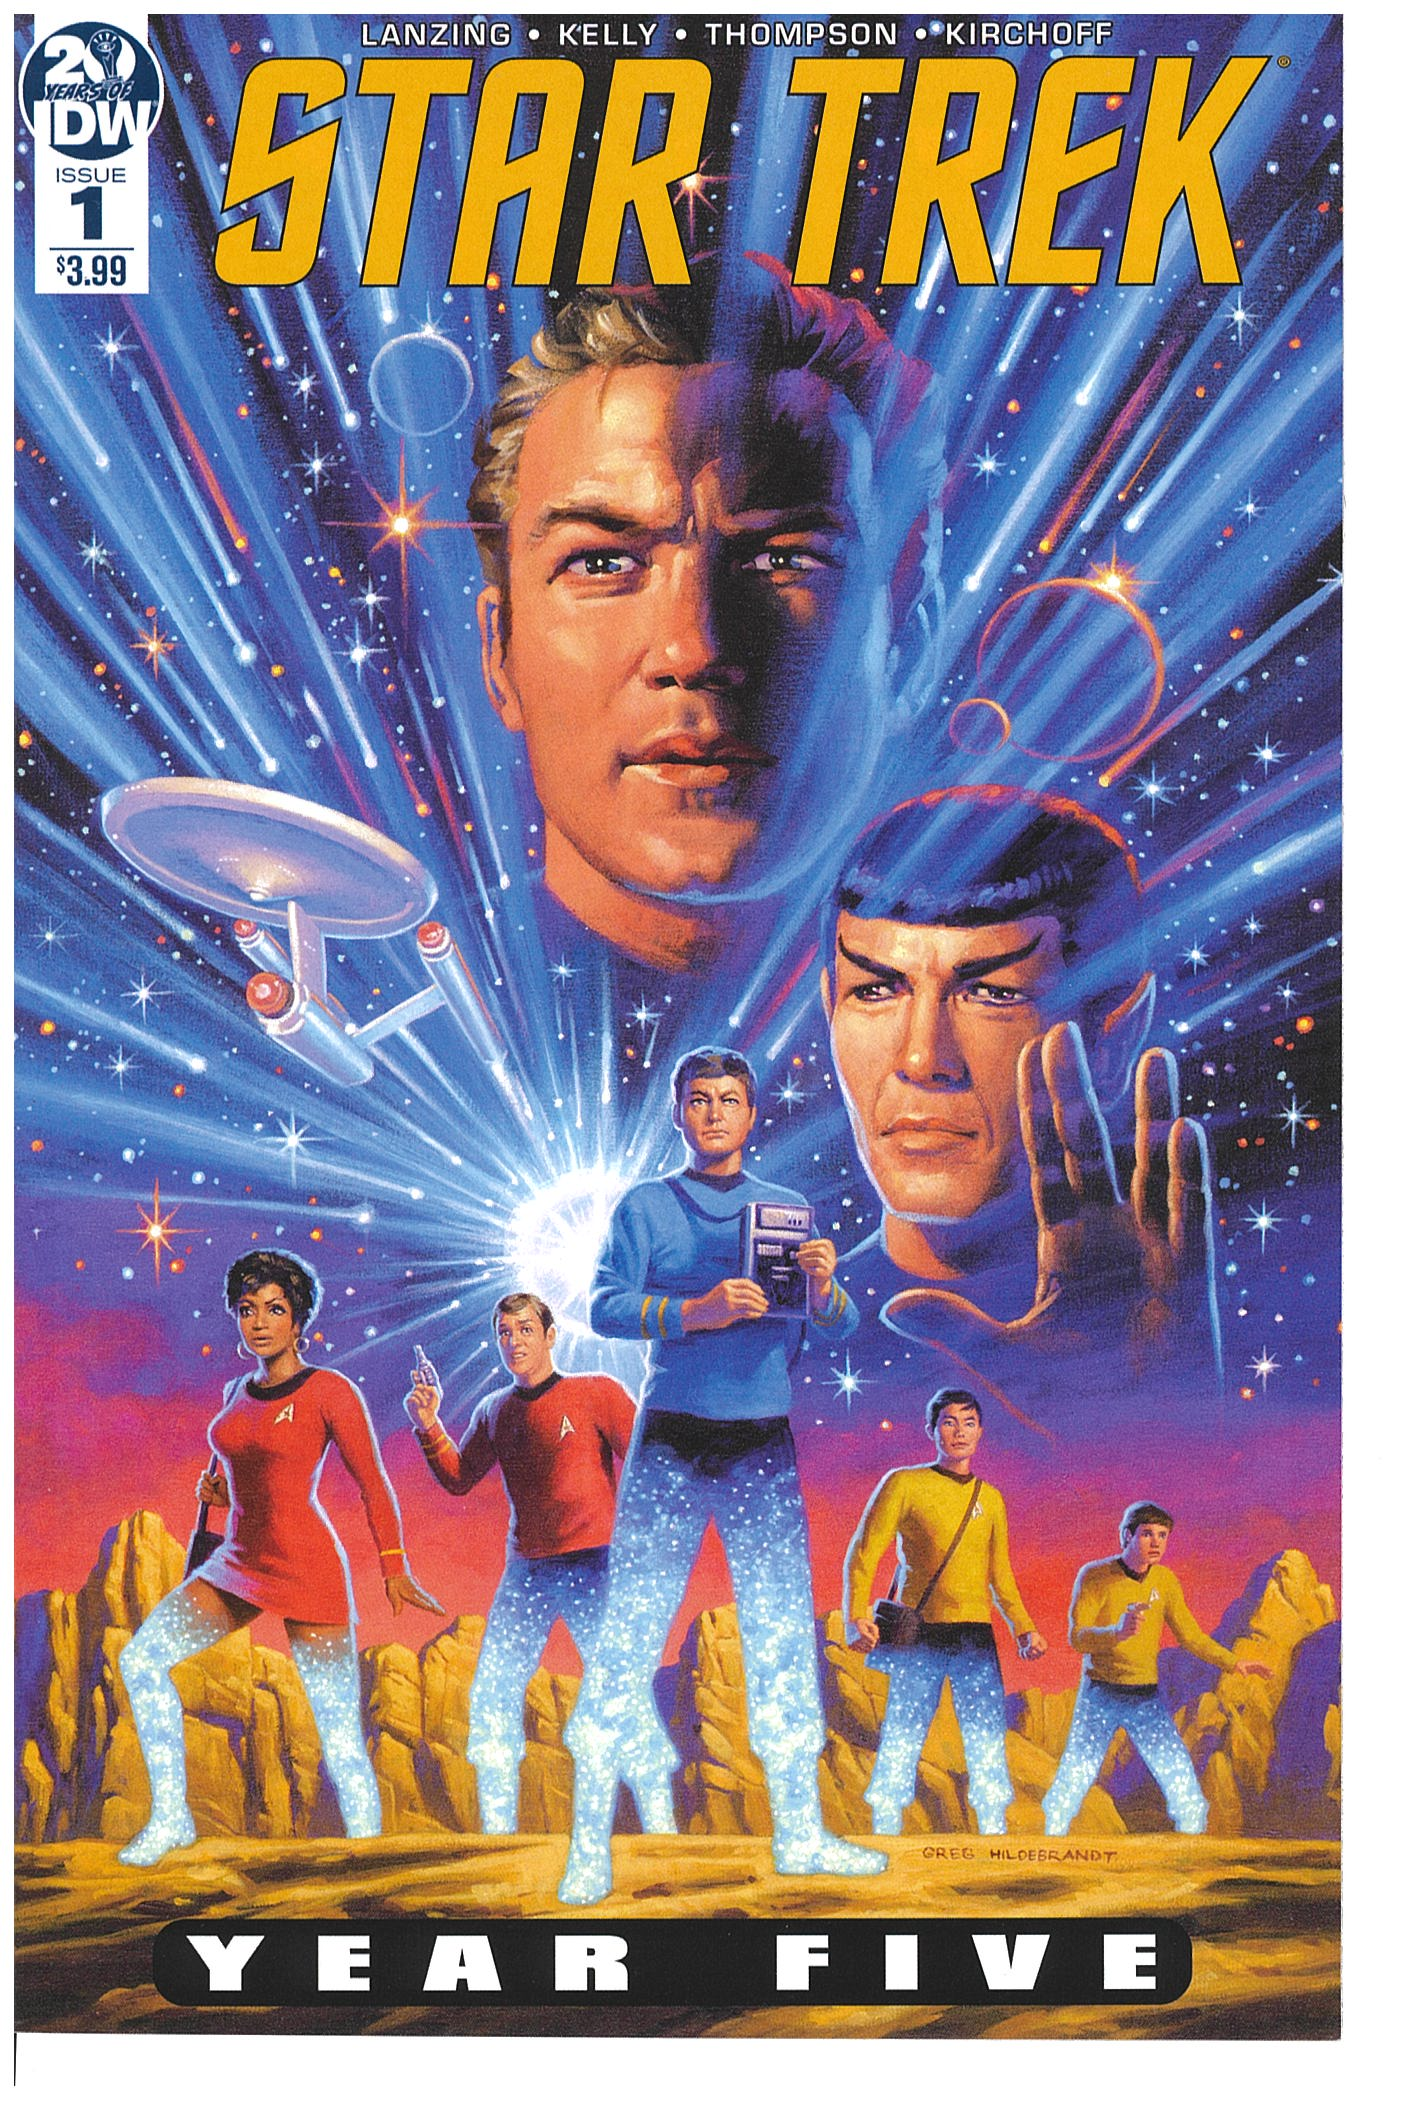 Star Trek Year Five #1 2019